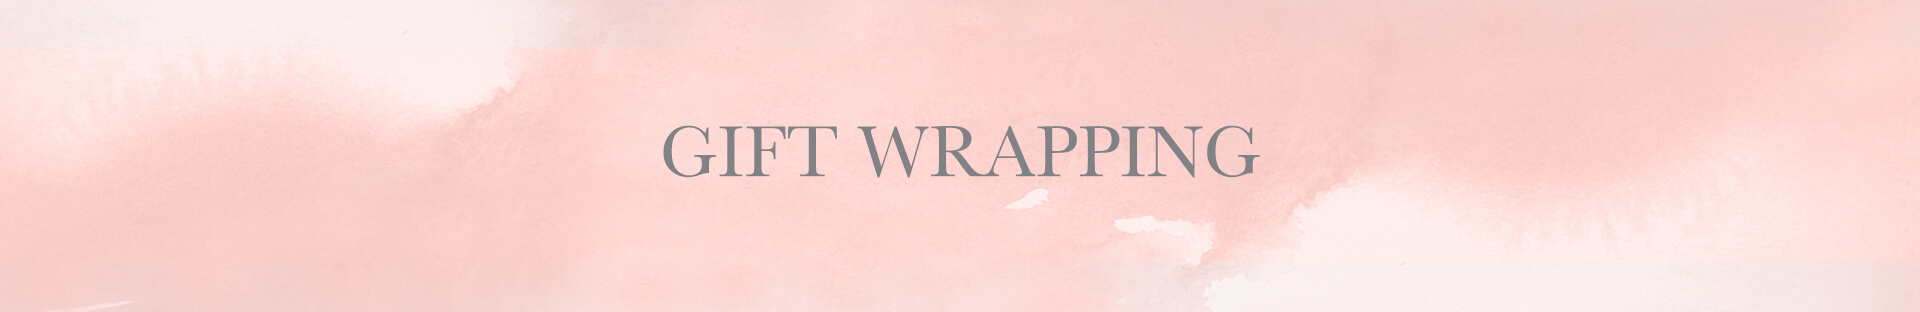 Magpies Gifts | Gift Wrapping